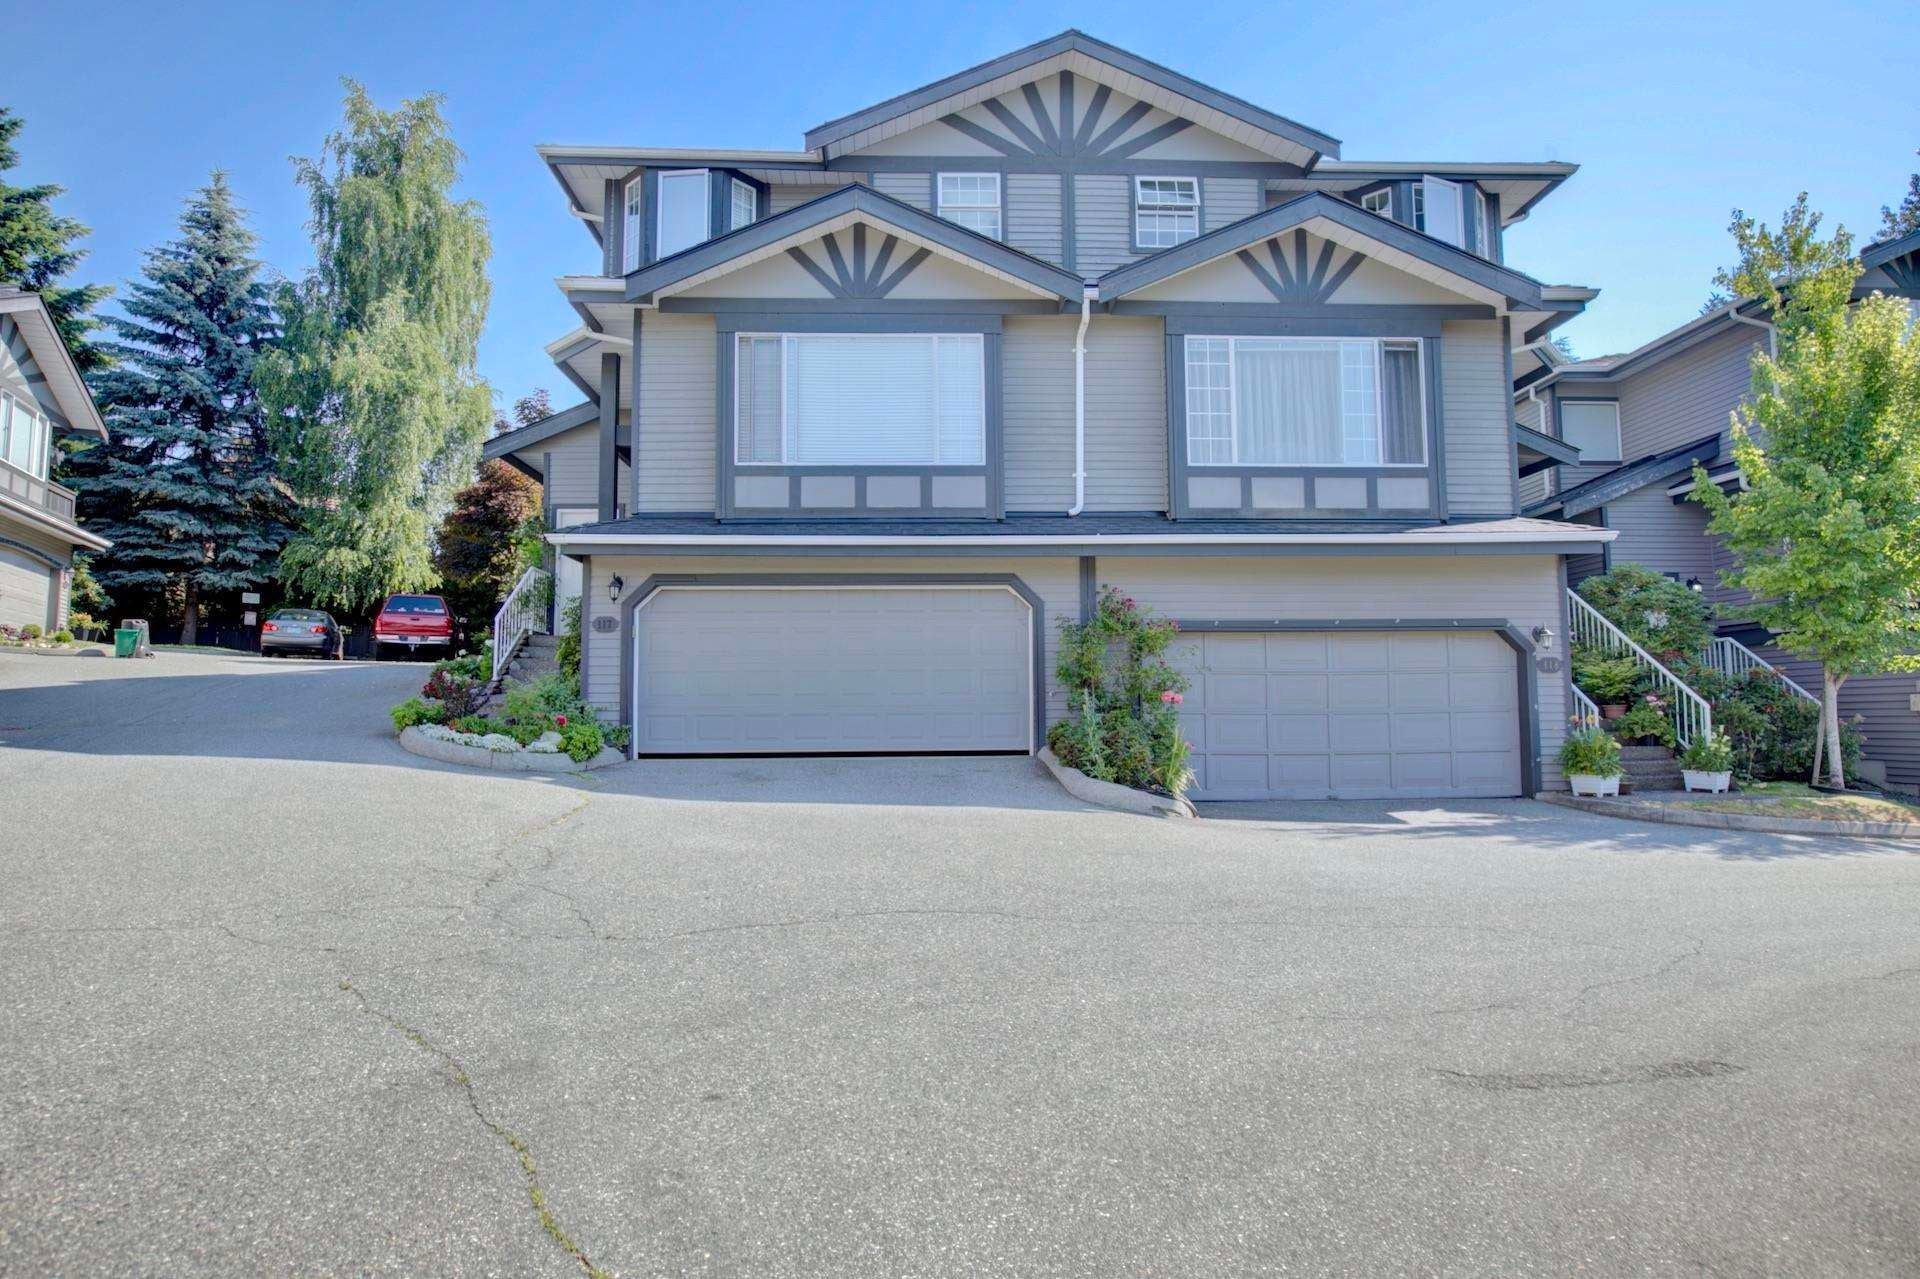 118 1685 PINETREE WAY - Westwood Plateau Townhouse for sale, 4 Bedrooms (R2599068) - #1